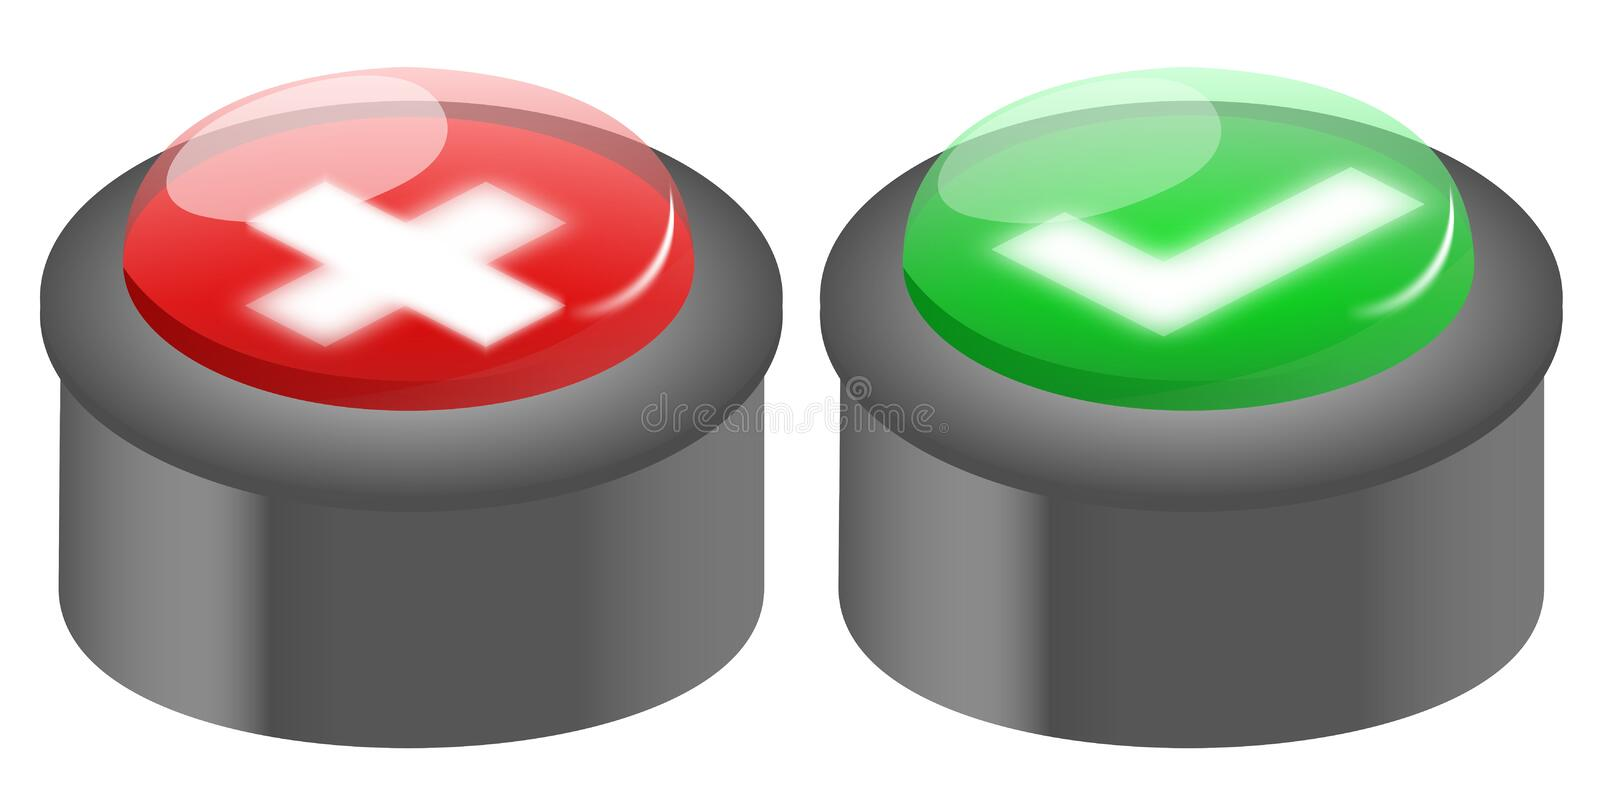 Download Push buttons stock illustration. Image of option, green - 21929559